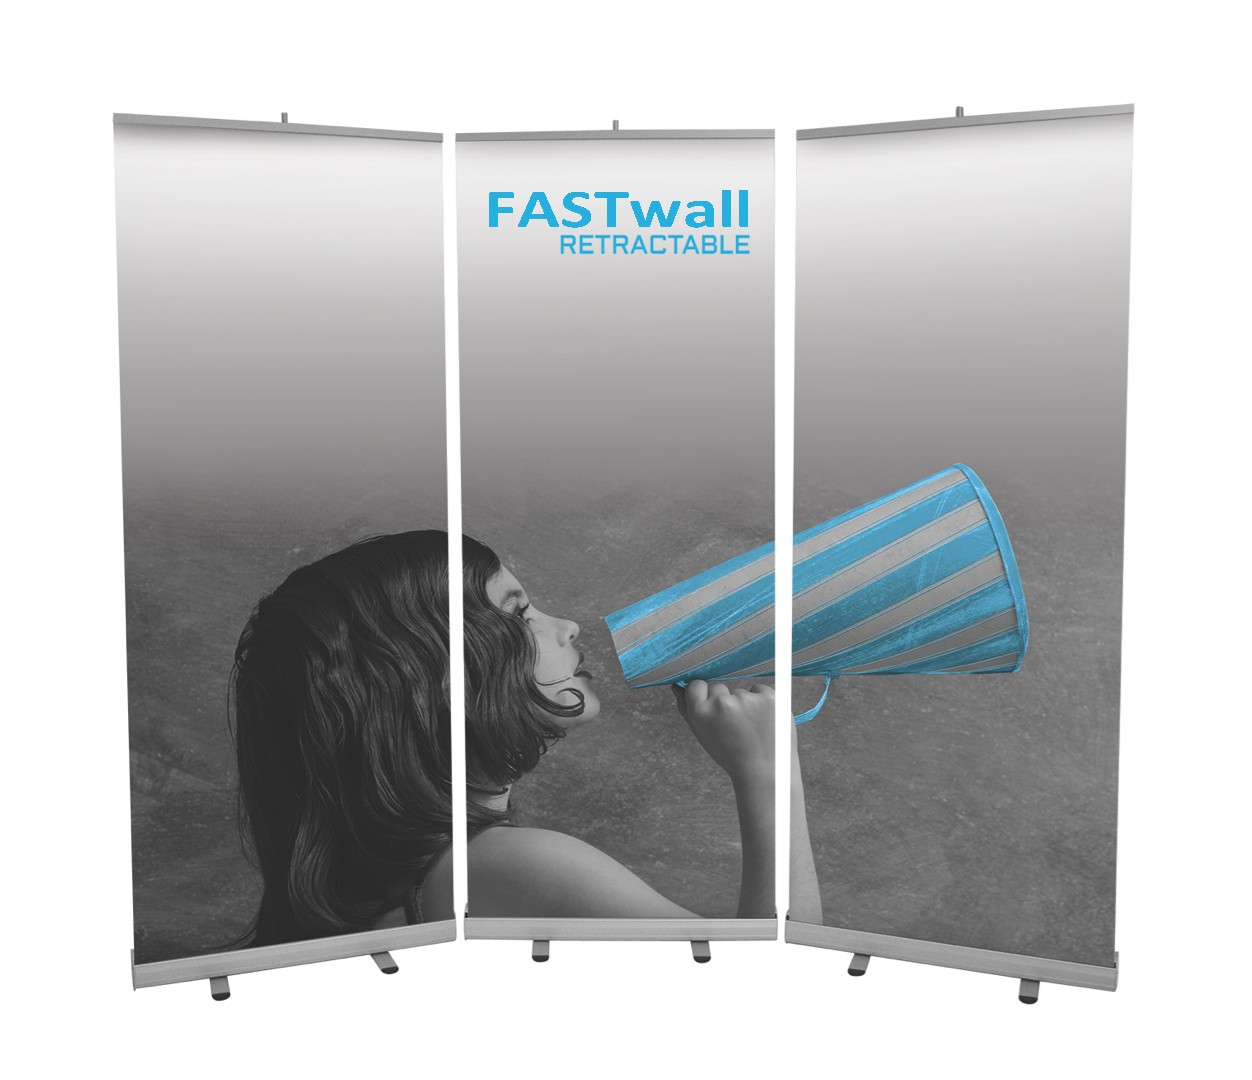 Exhibition Stand Banner : Fastwall banner display